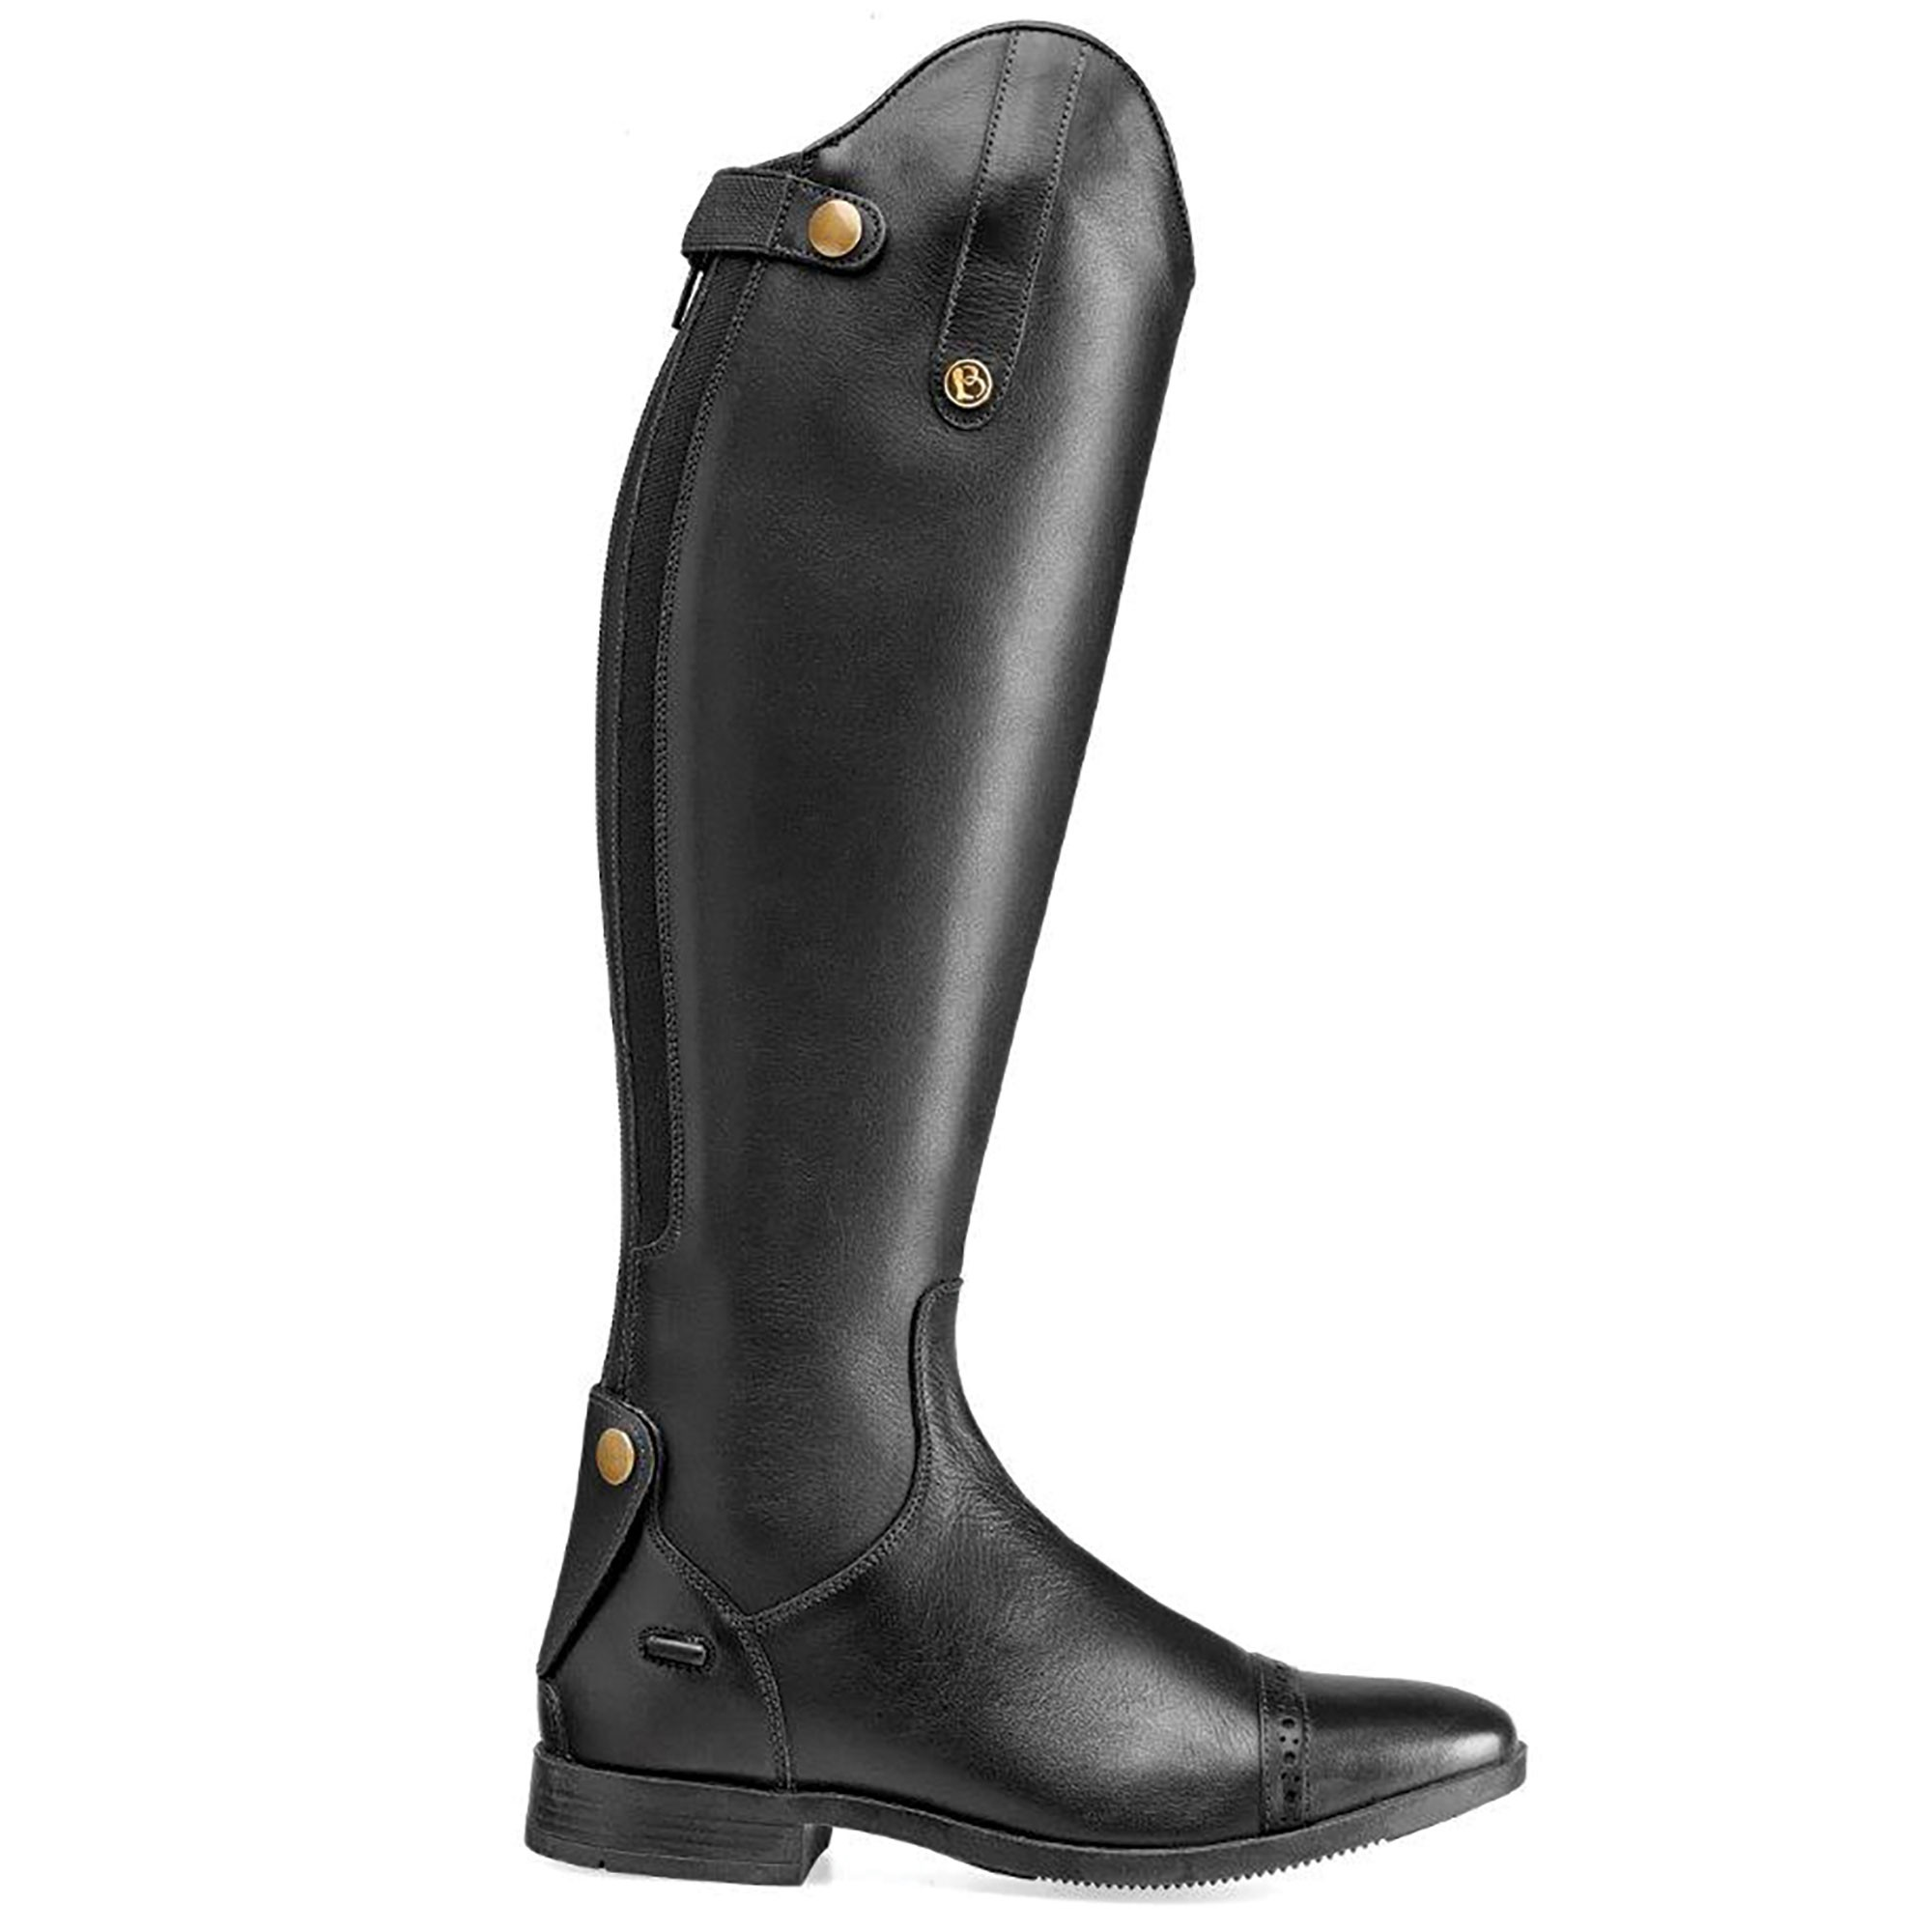 Long leather riding boots live life to the full We are sure that, once browsing our irresistible range of long leather riding boots, you will agree that they epitomise all that riding evokes: a love of the great outdoors and a sense of living life to the absolute full.